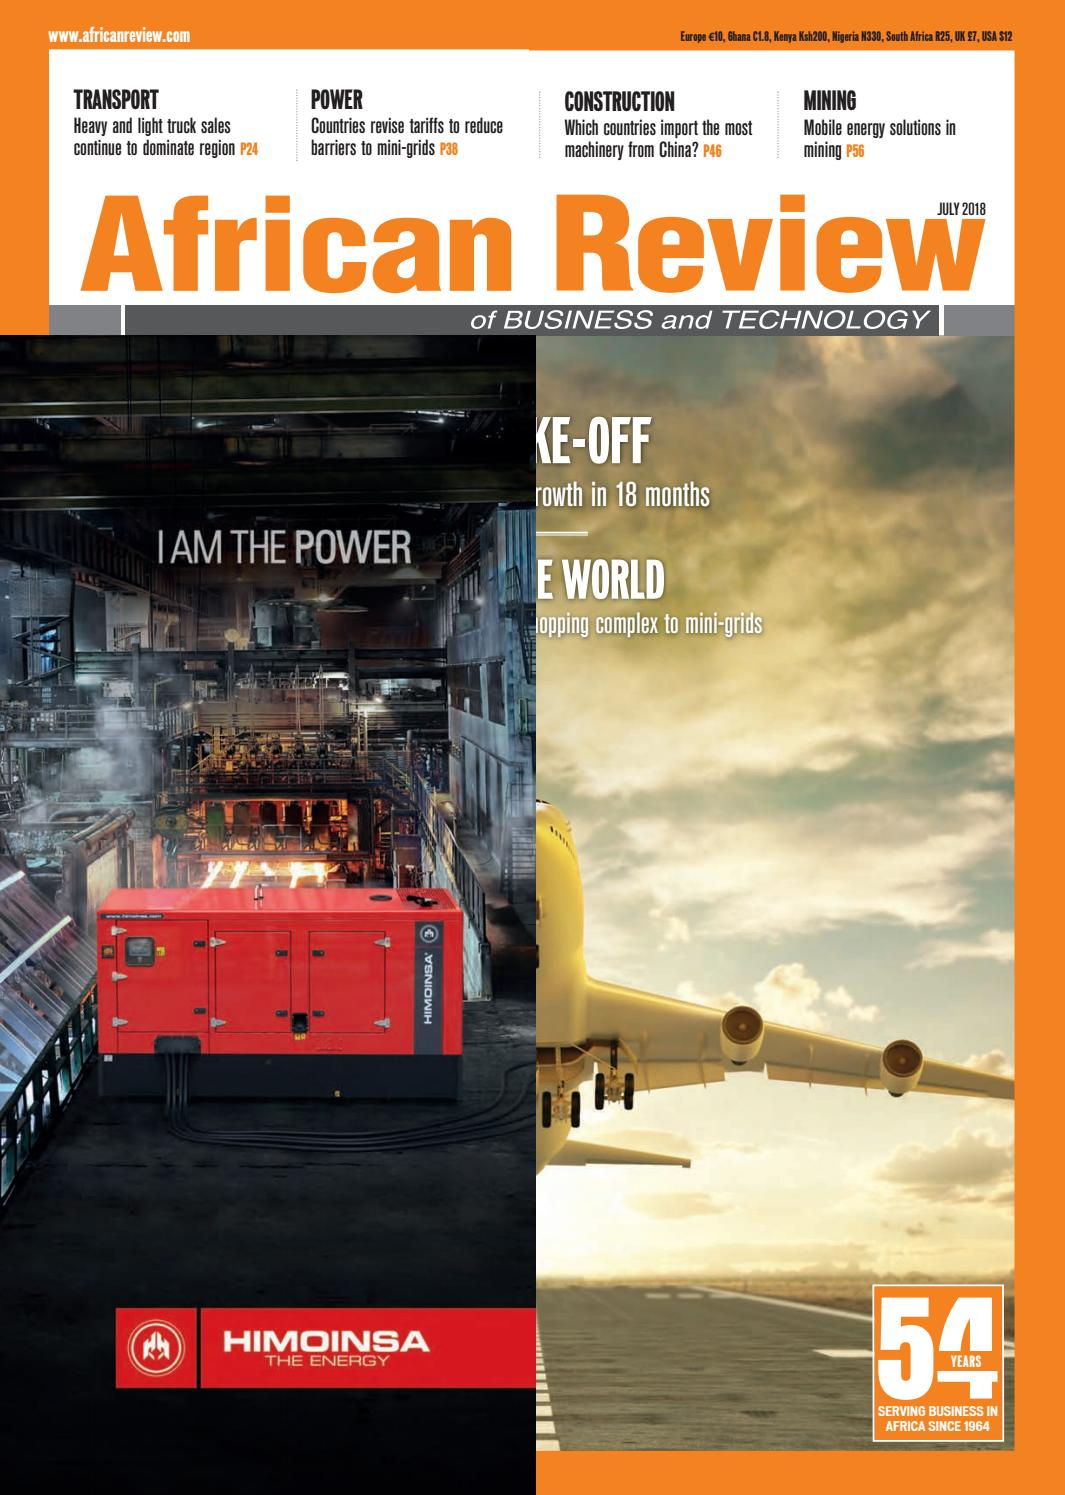 African Review July 2018 by Alain Charles Publishing - issuu